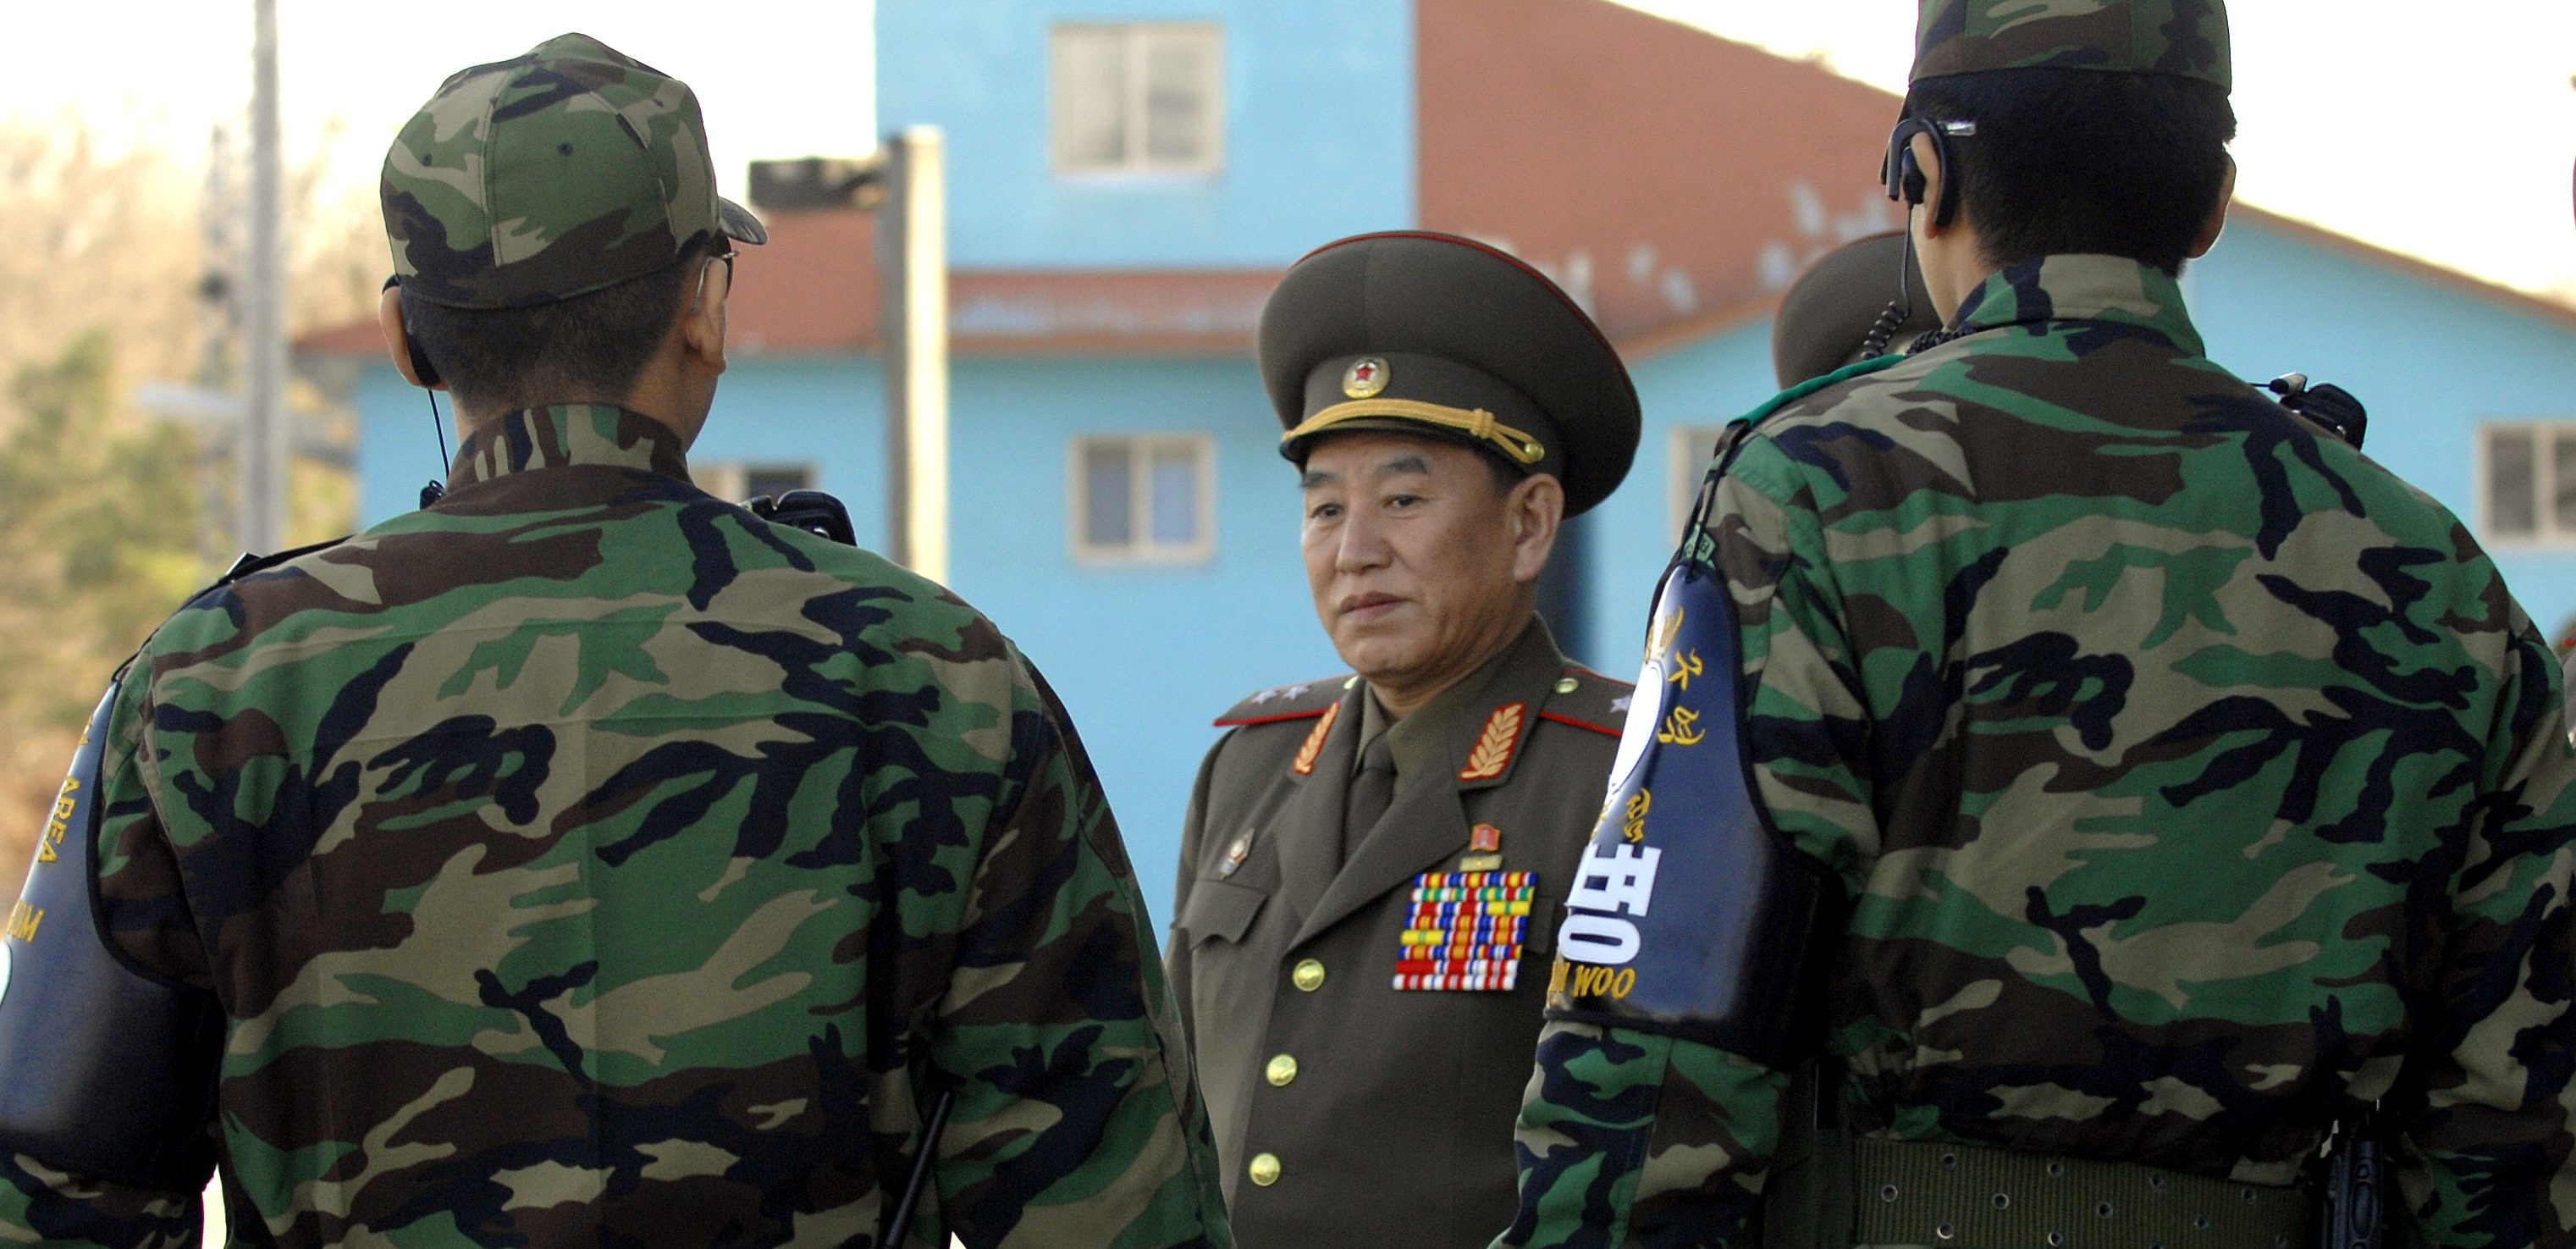 North Korea's chief delegate Kim walks by South Korean soldiers after the inter-Korean general talks at the south side of the truce village of Panmunjom